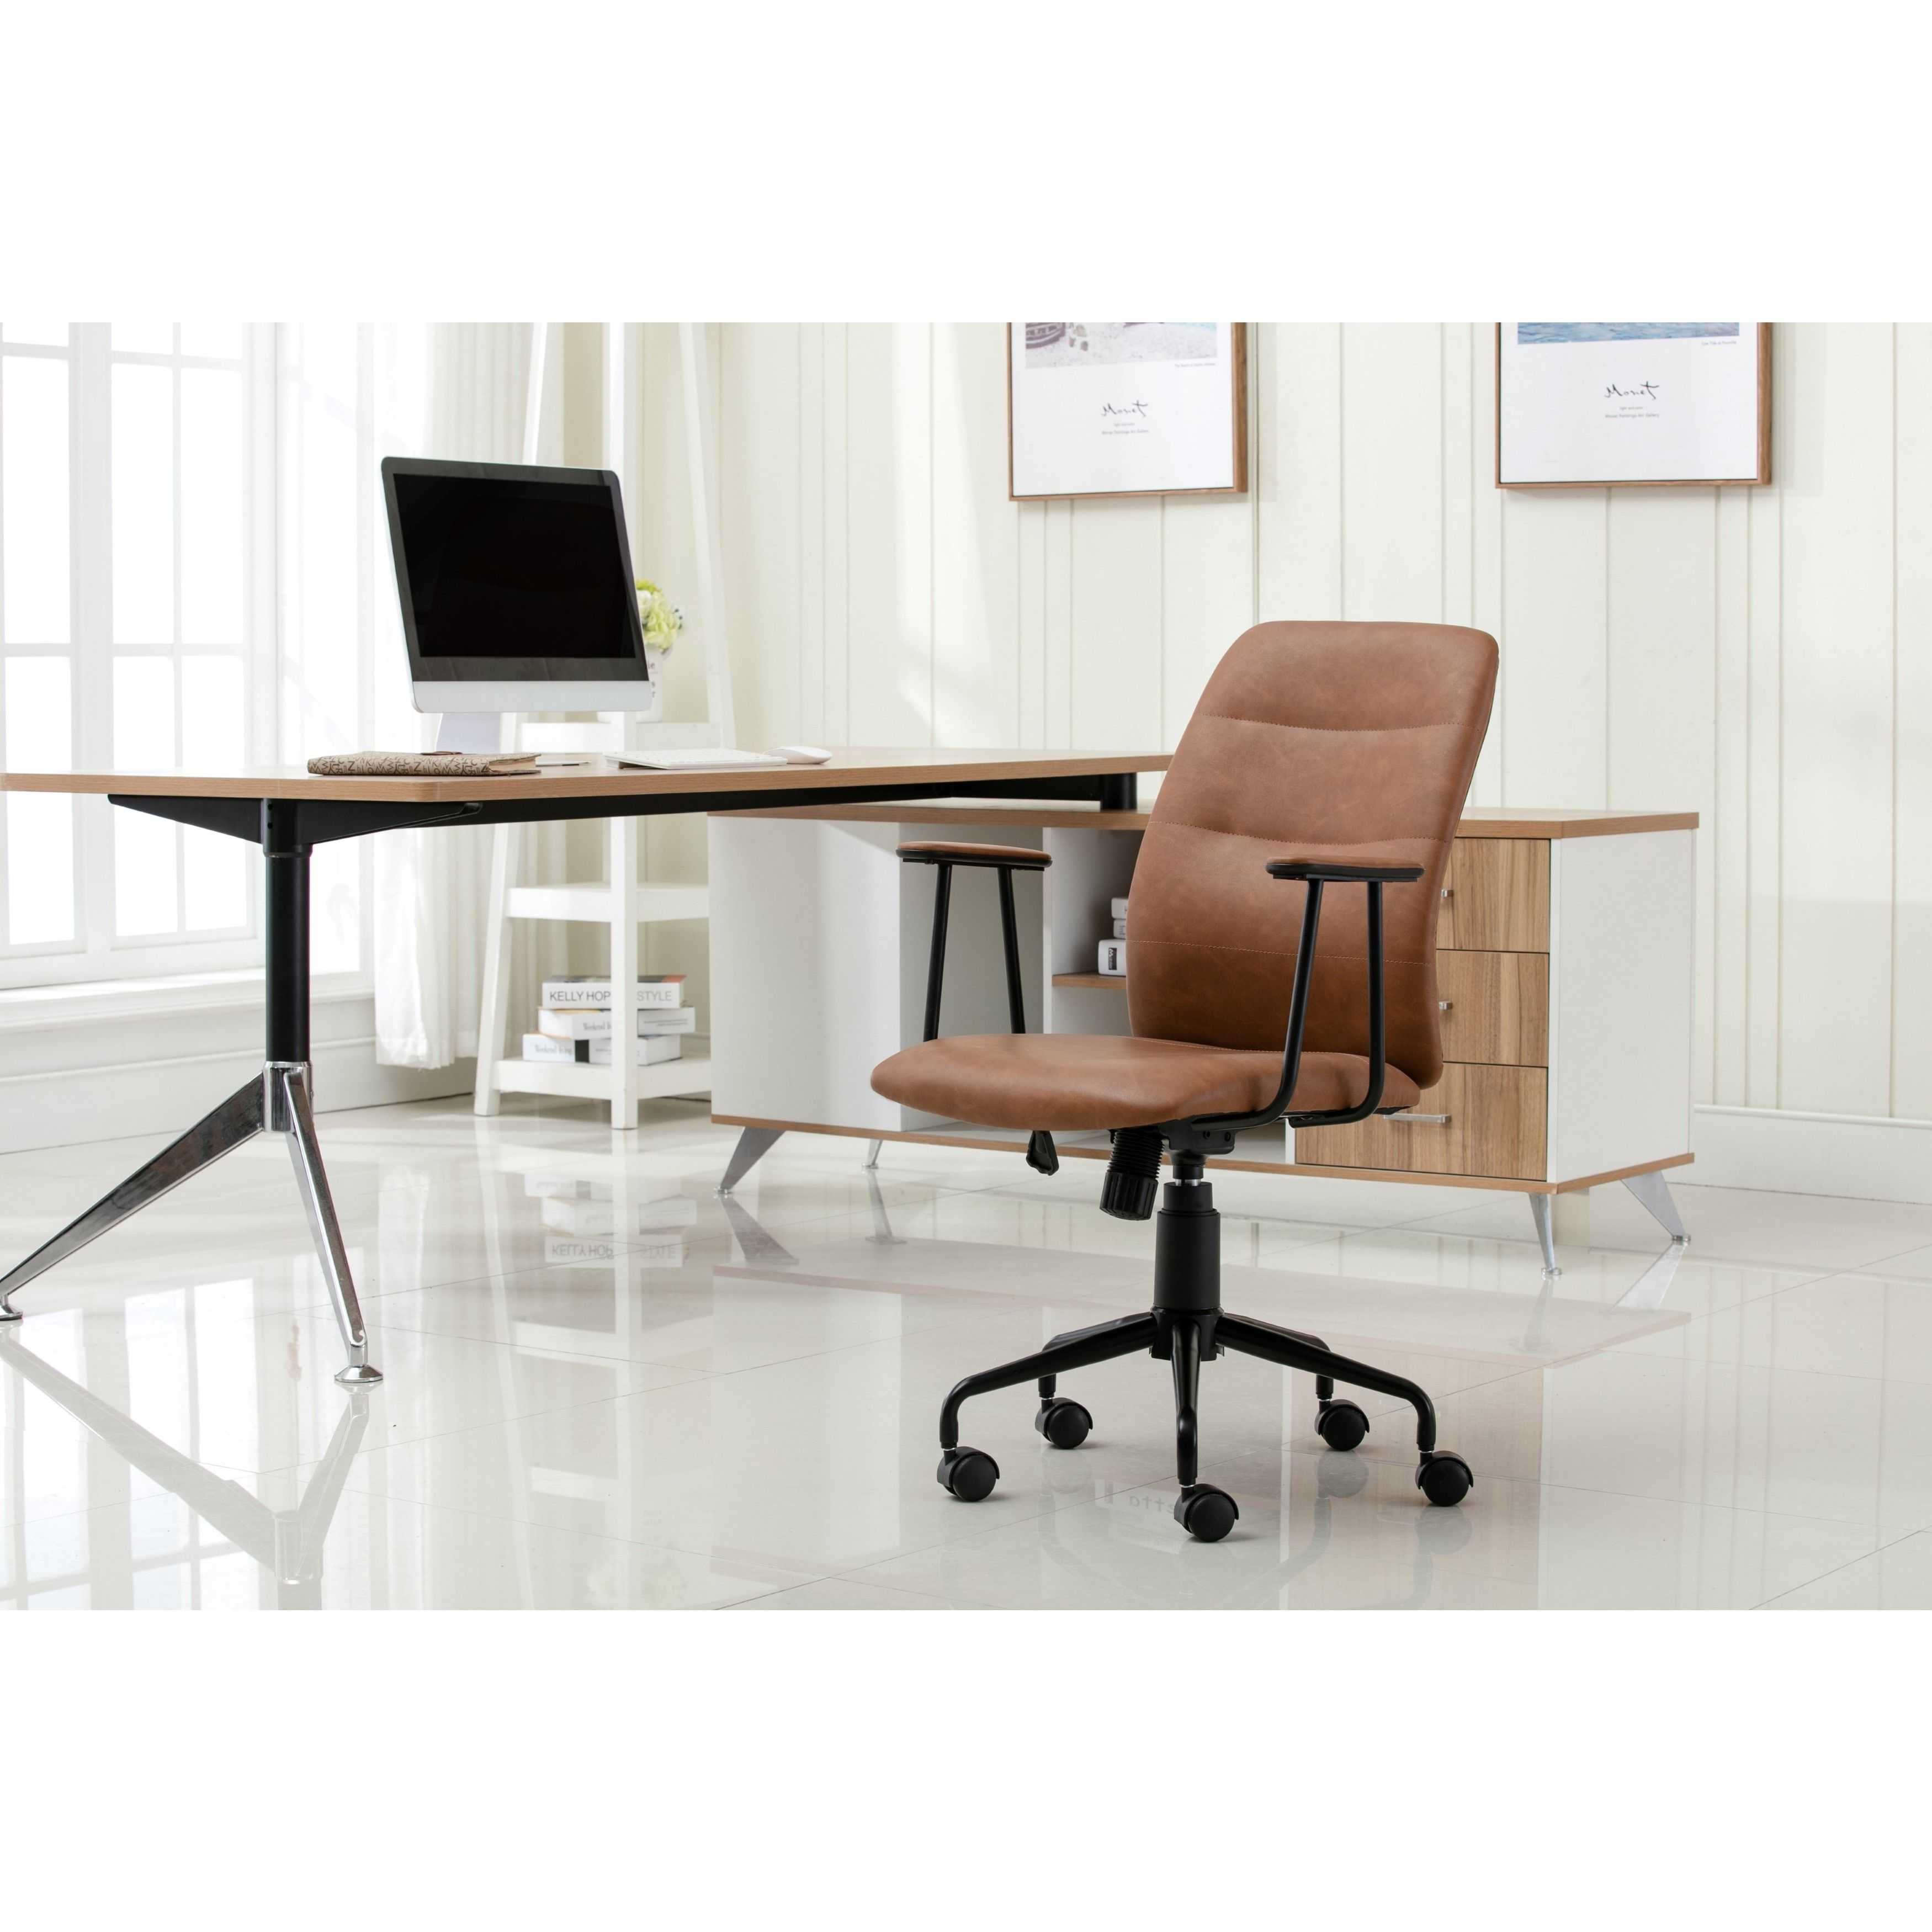 porthos home blanche office chair (brown) | outlet store, free